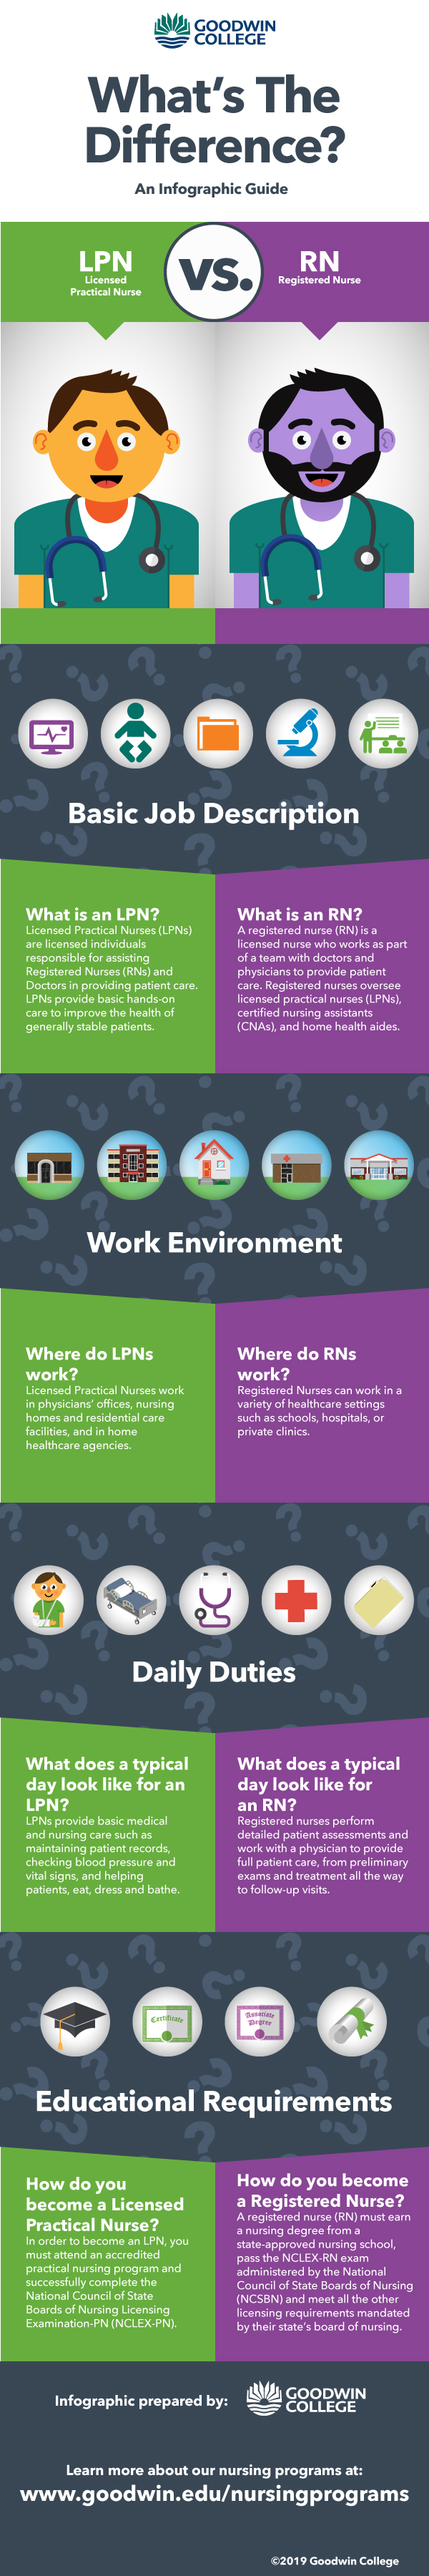 difference between lpn and rn